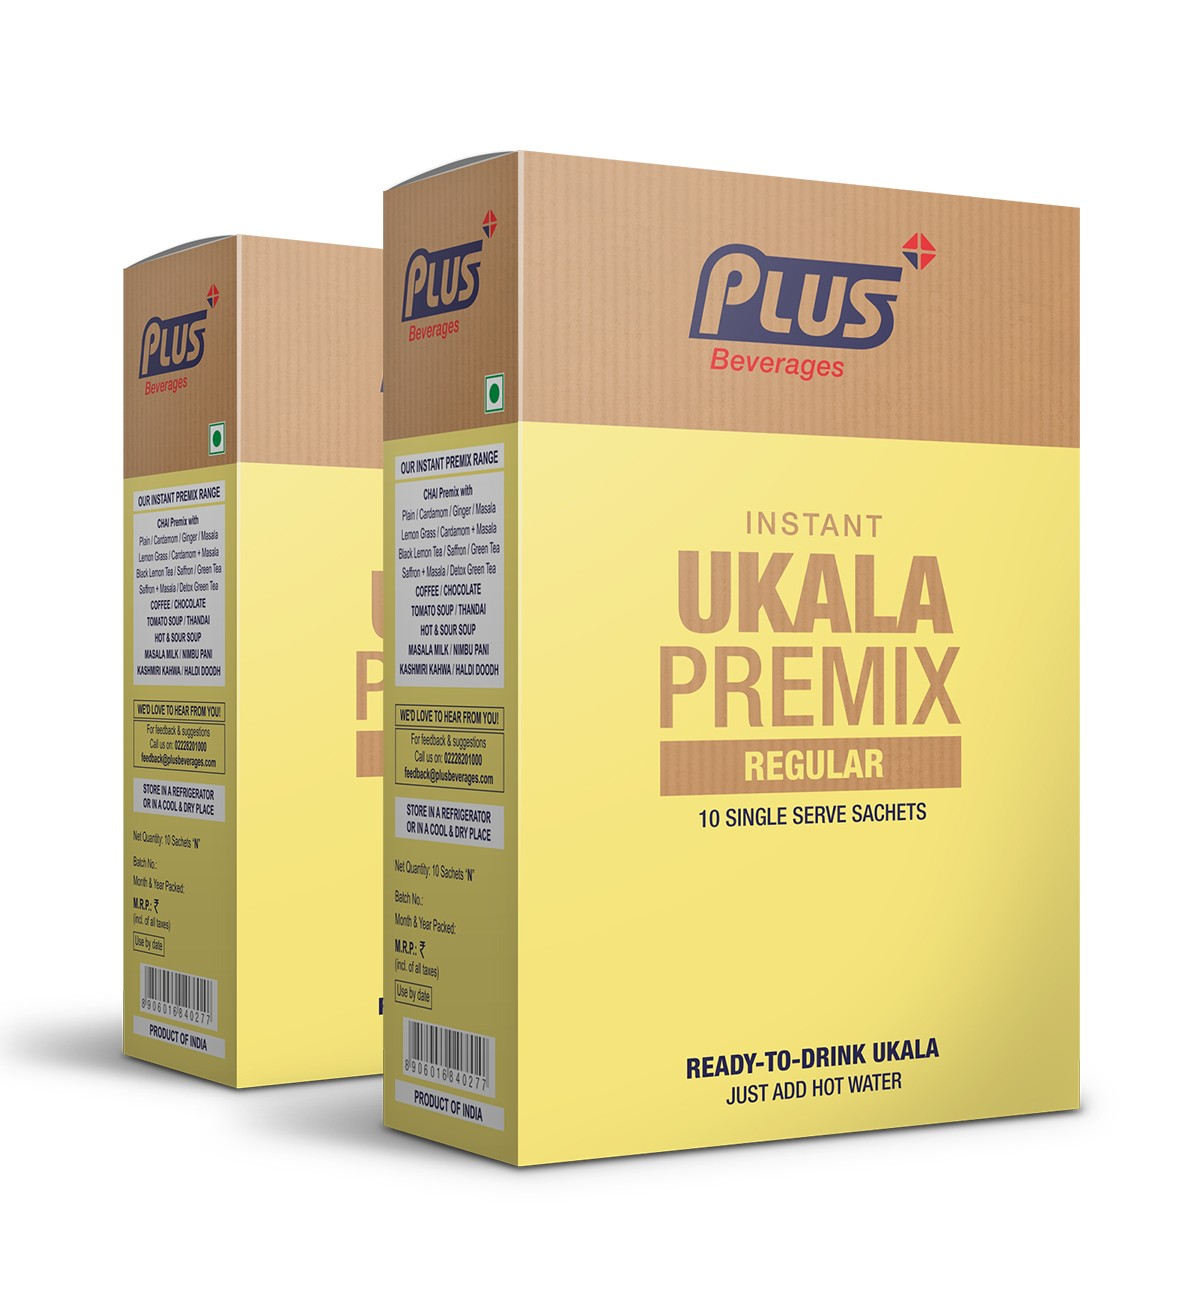 Get Instant Ukala Premix at best price - Free Shipping   Plus Beverages